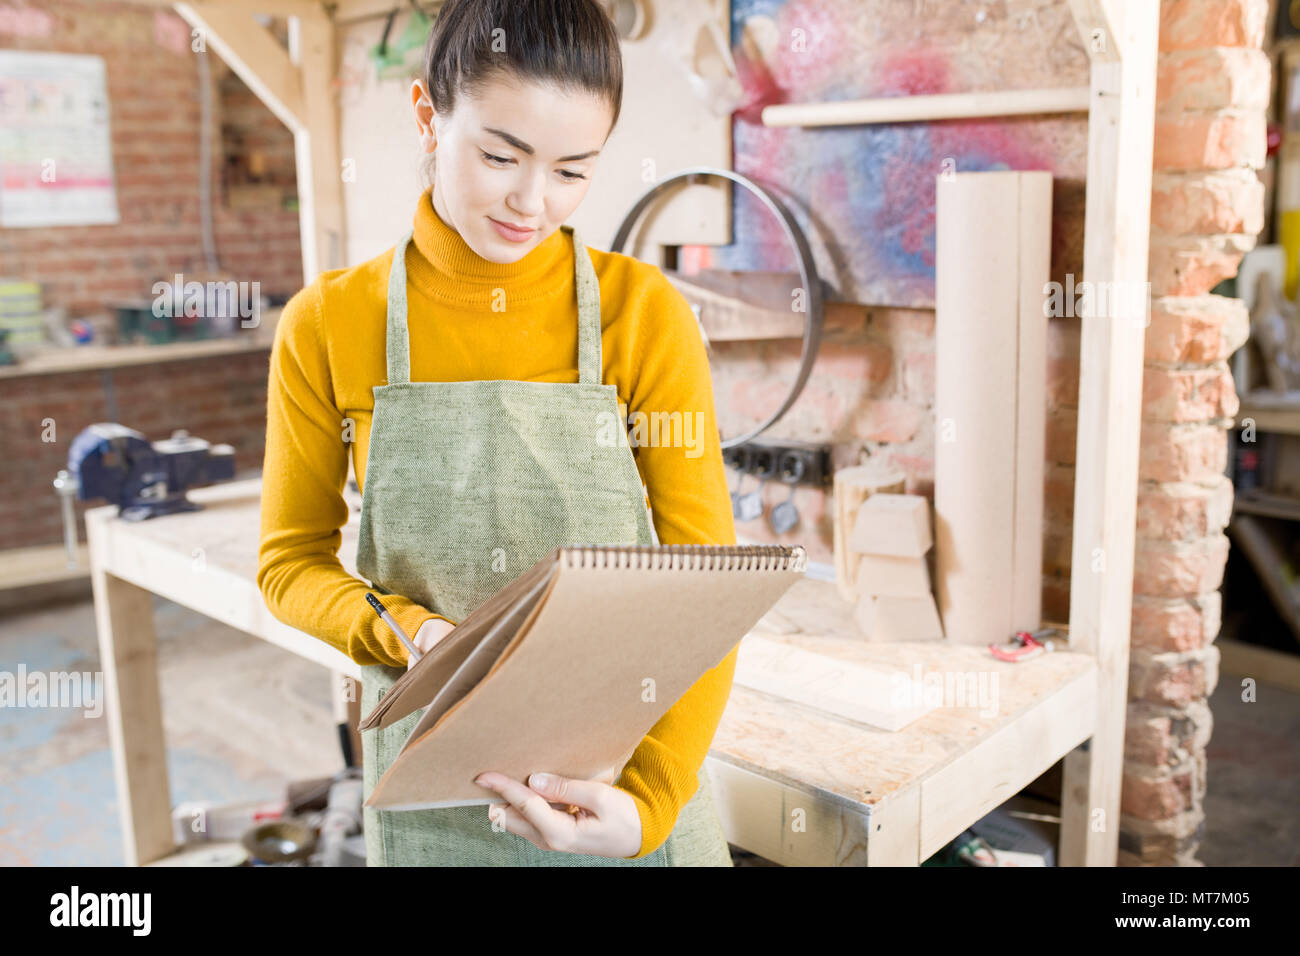 Smiling Female Artisan in Workshop - Stock Image